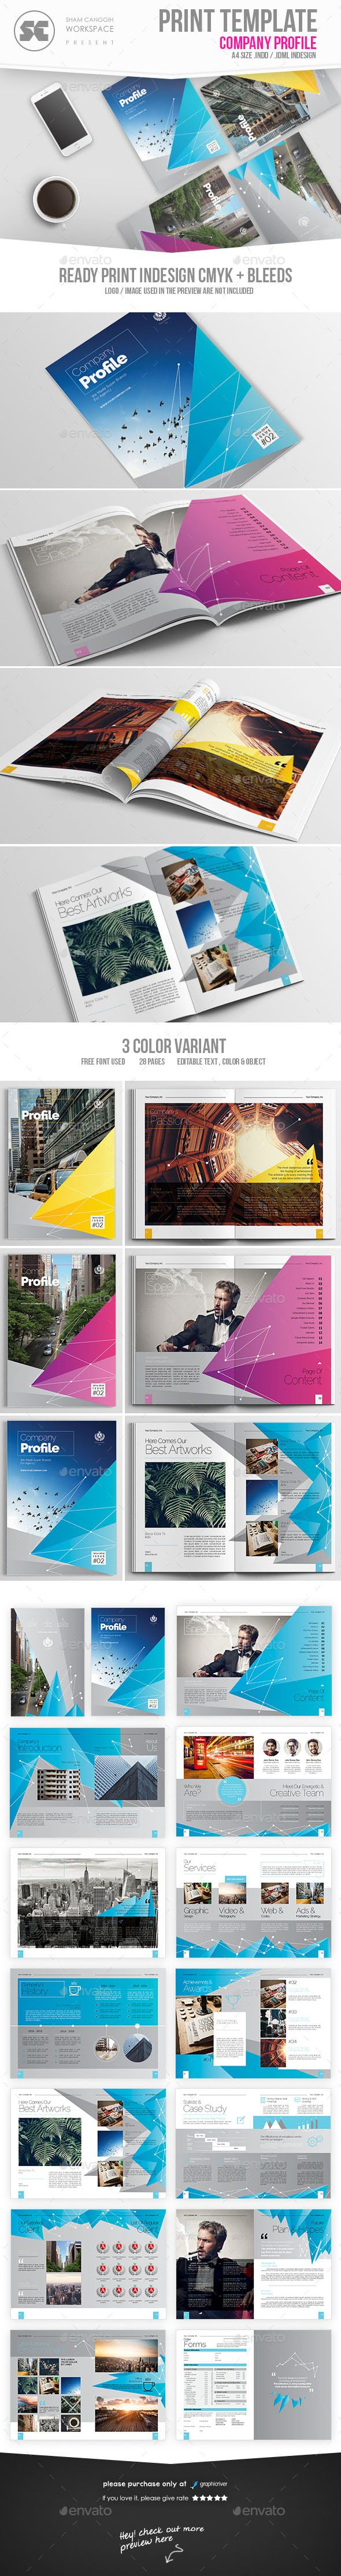 Company Profile  Company Profile Indesign Templates And Brochures